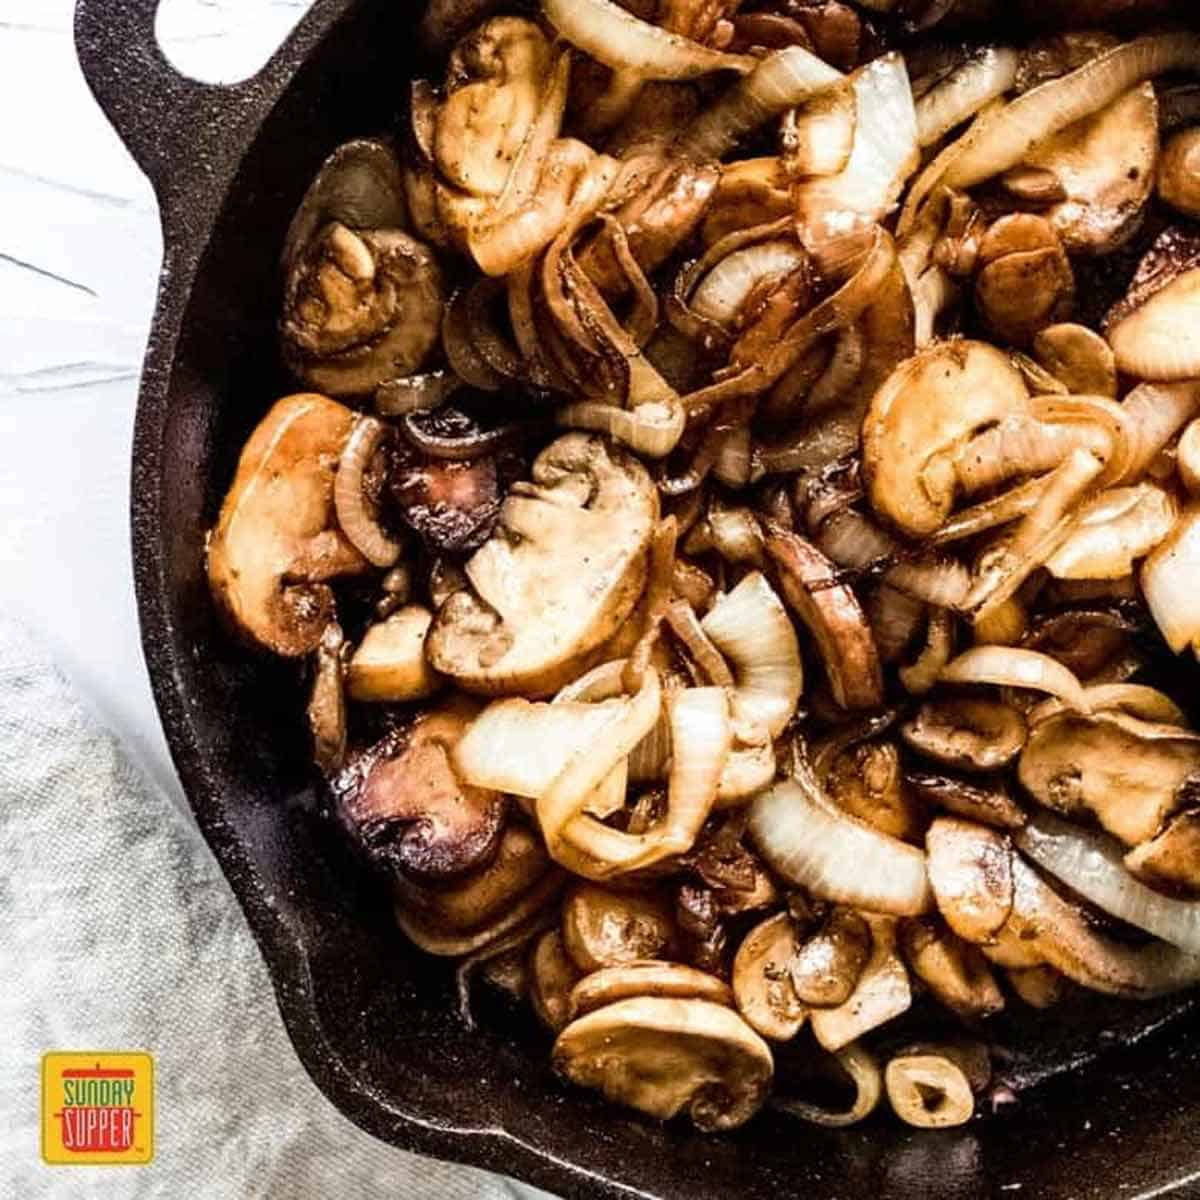 Sauteed Mushrooms and Onions in a black skillet, caramelized and ready to serve